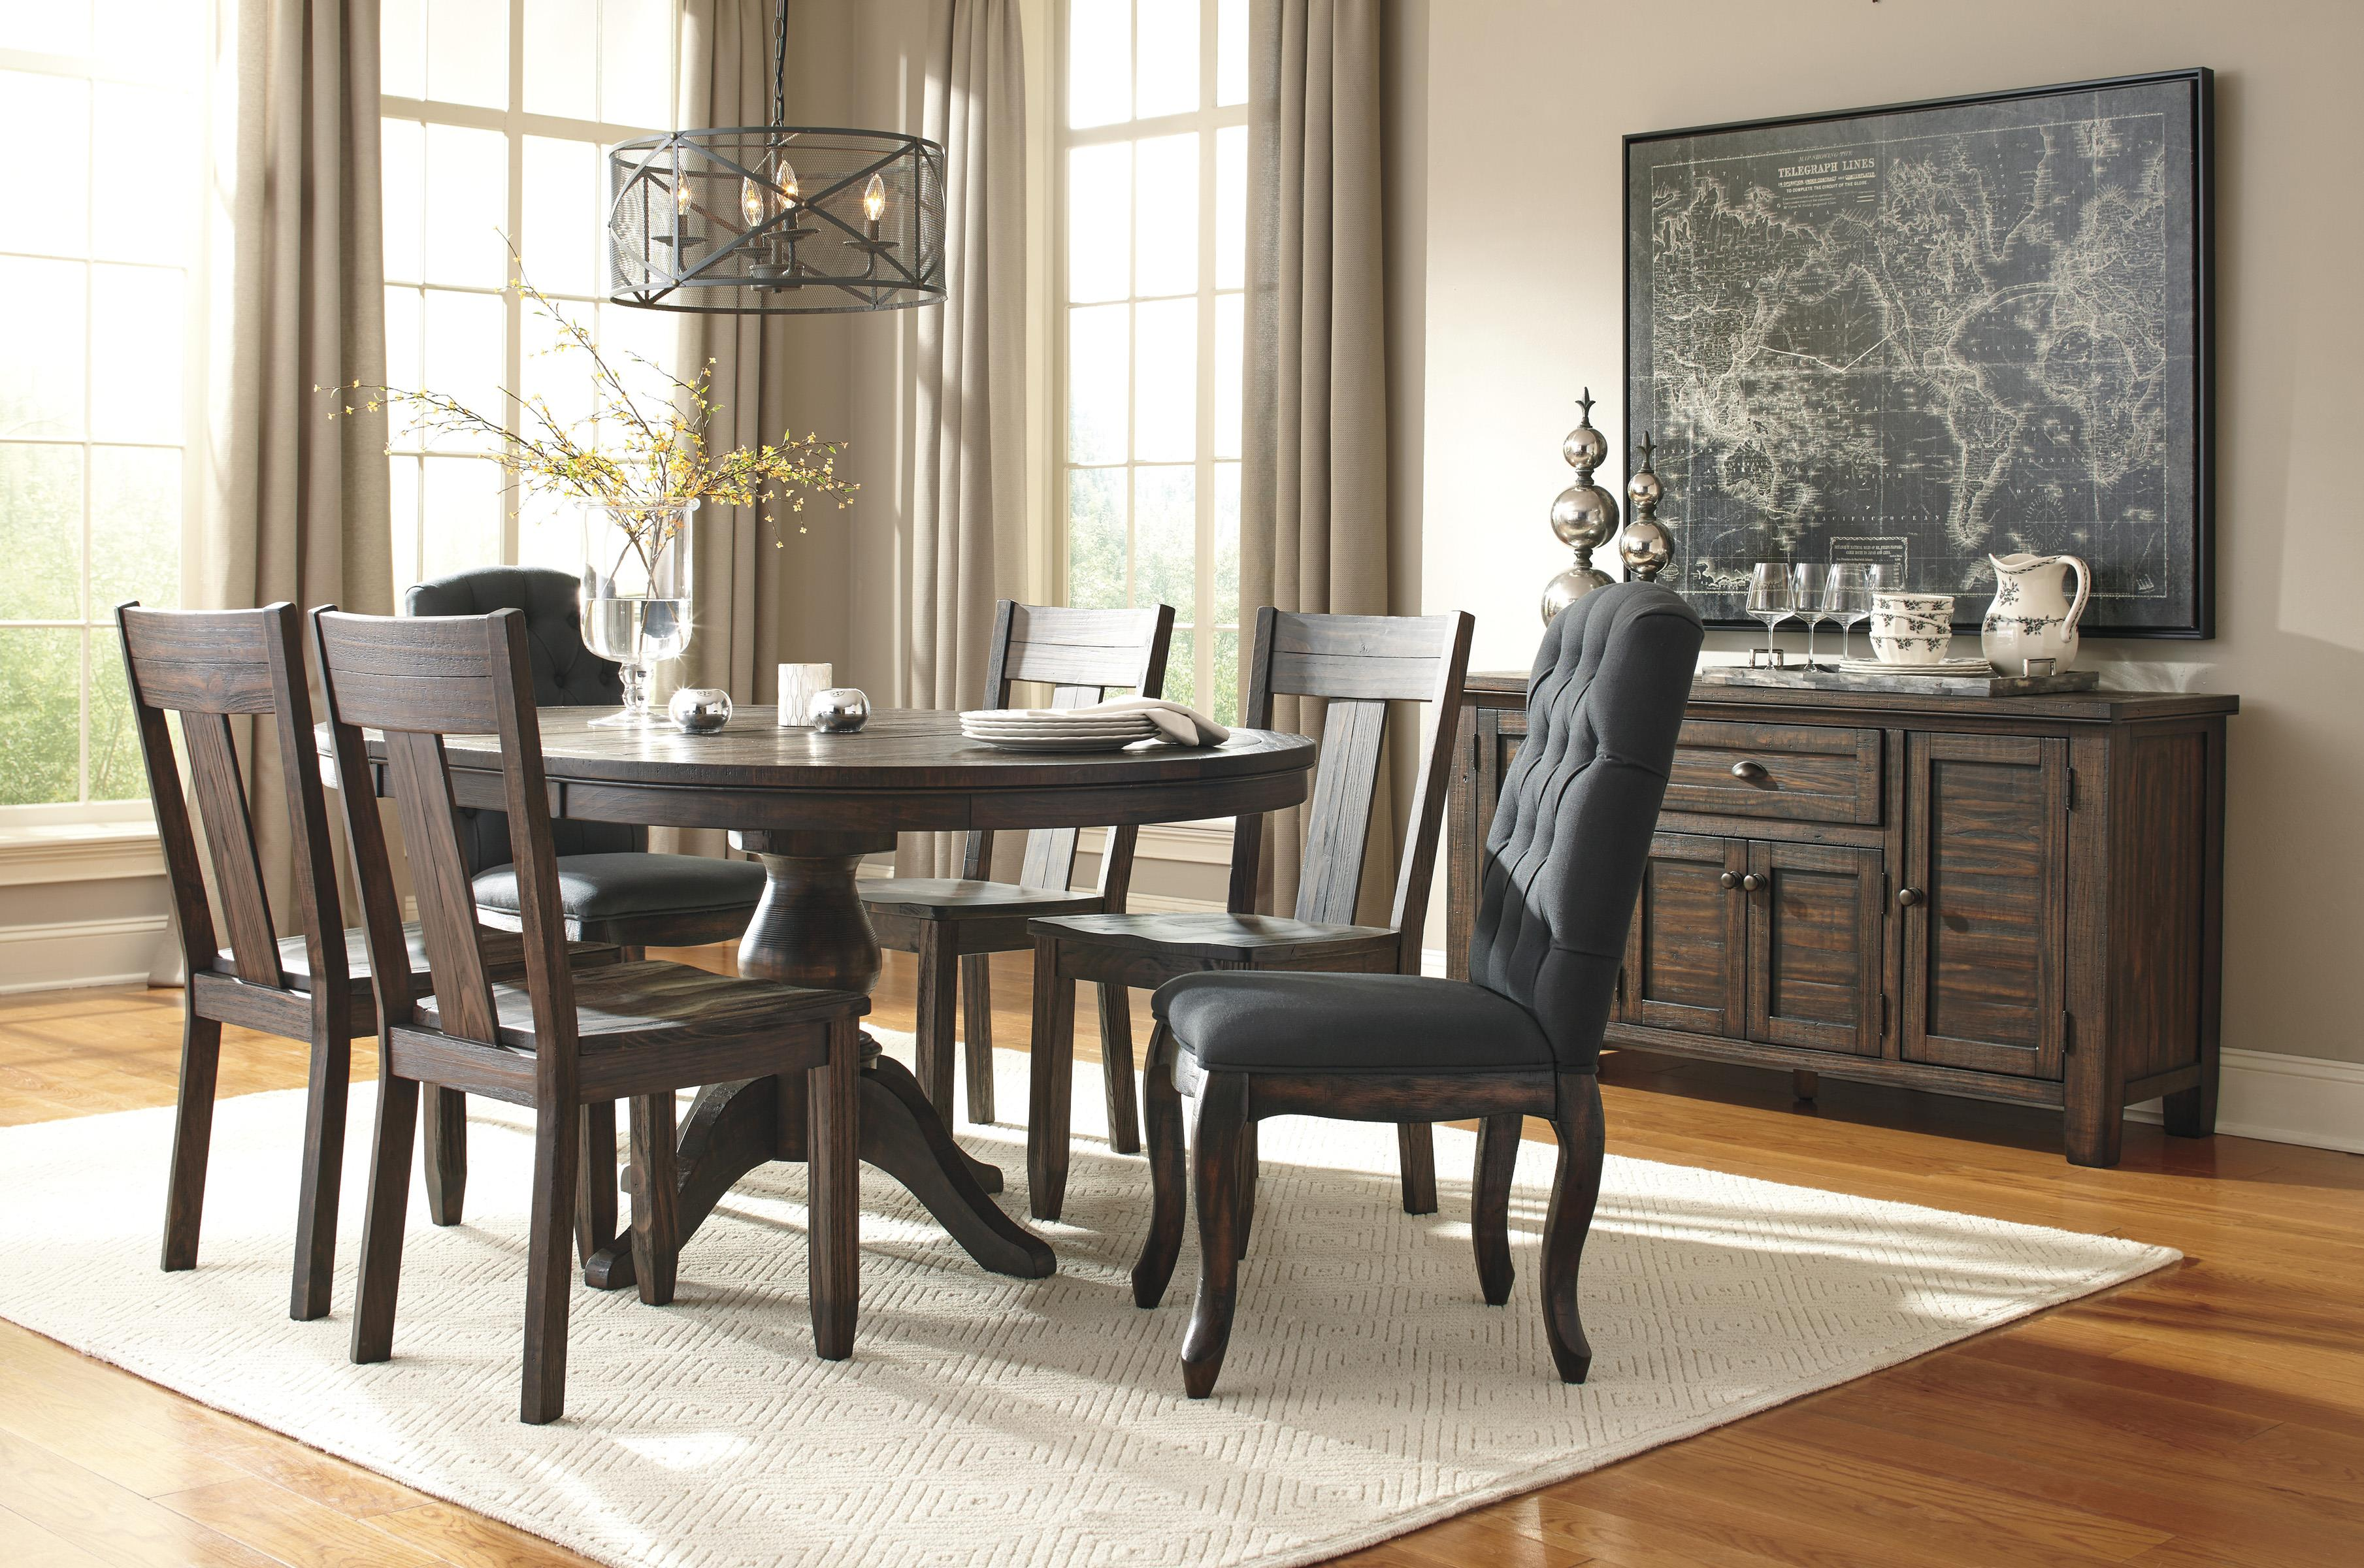 Ashley S Nest Decorating A Dining Room: Signature Design By Ashley Trudell D658-60 Solid Wood Pine